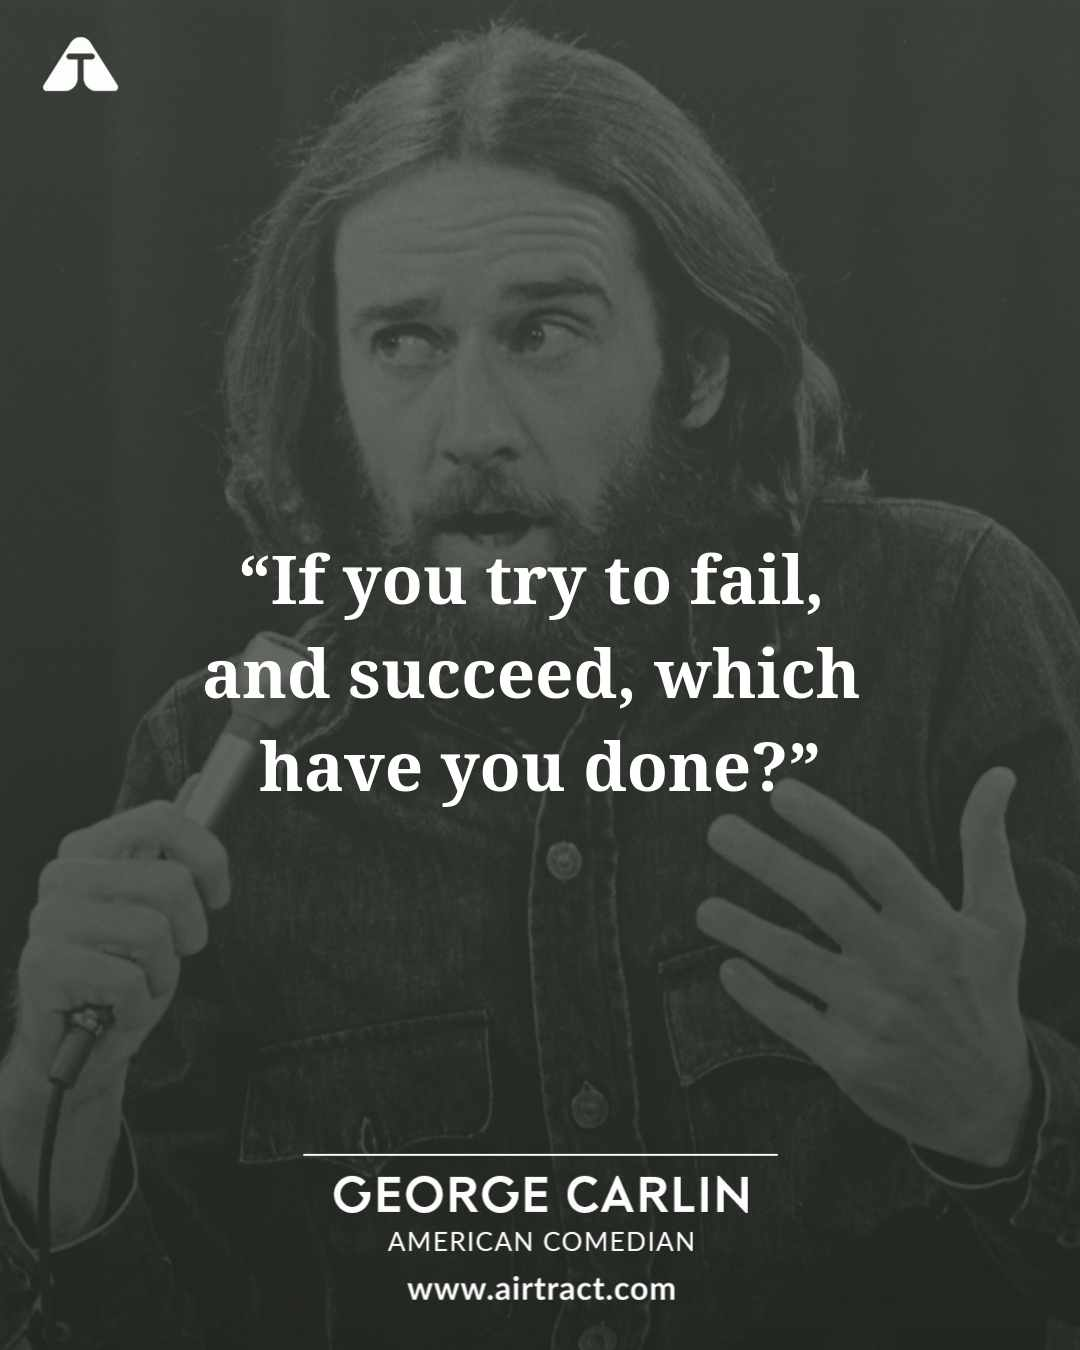 19 Wise And Sarcastic Quotes By George Carlin | AirTract